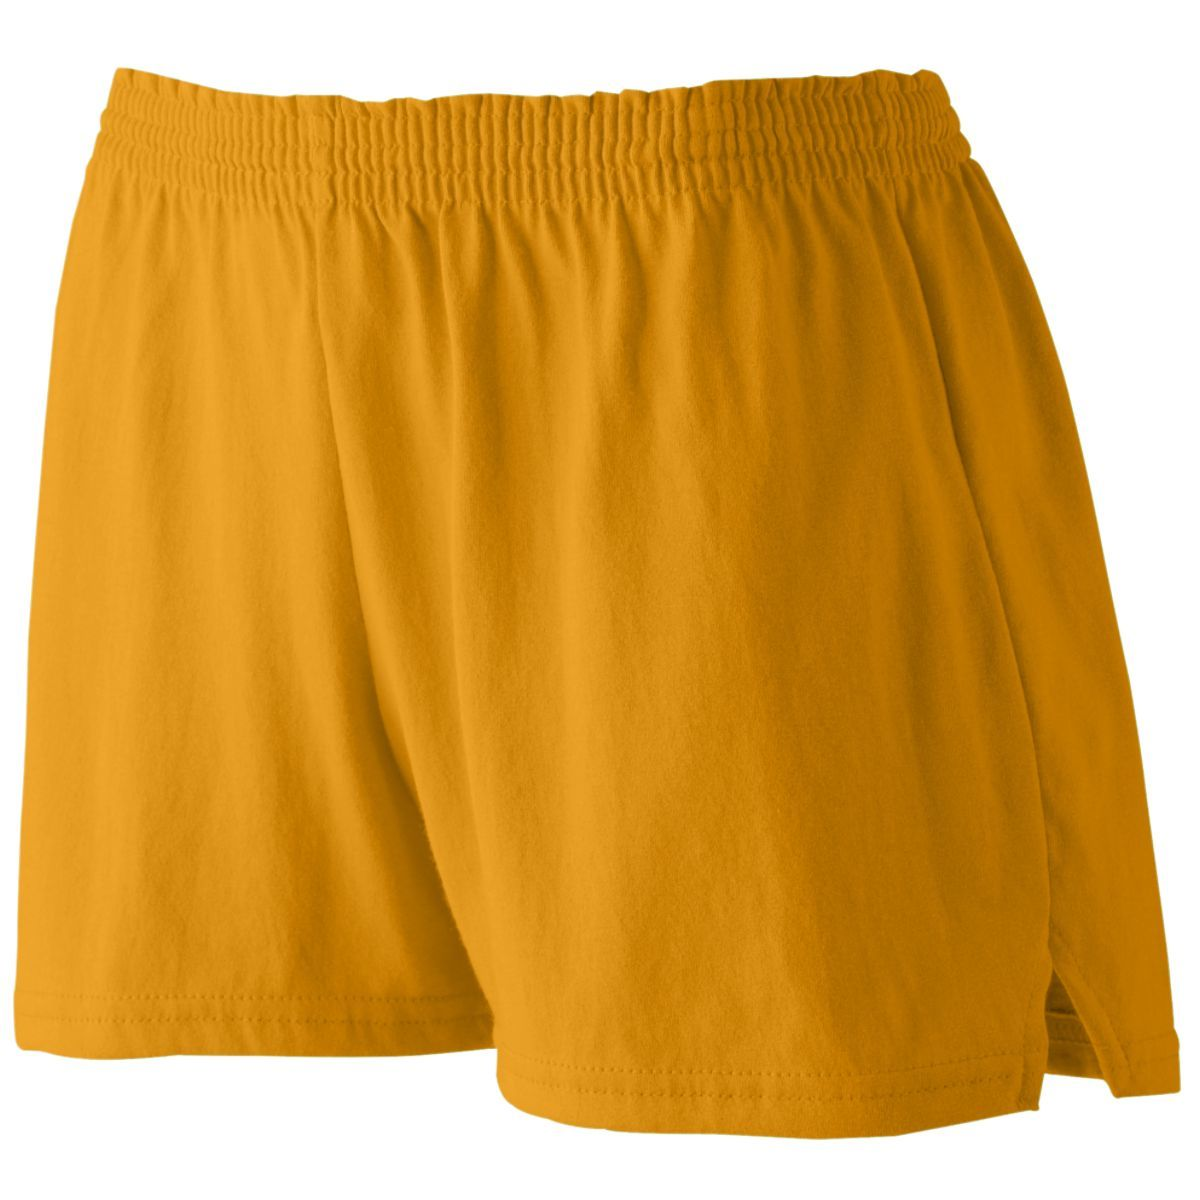 Ladies Junior Fit Jersey Shorts - GOLD